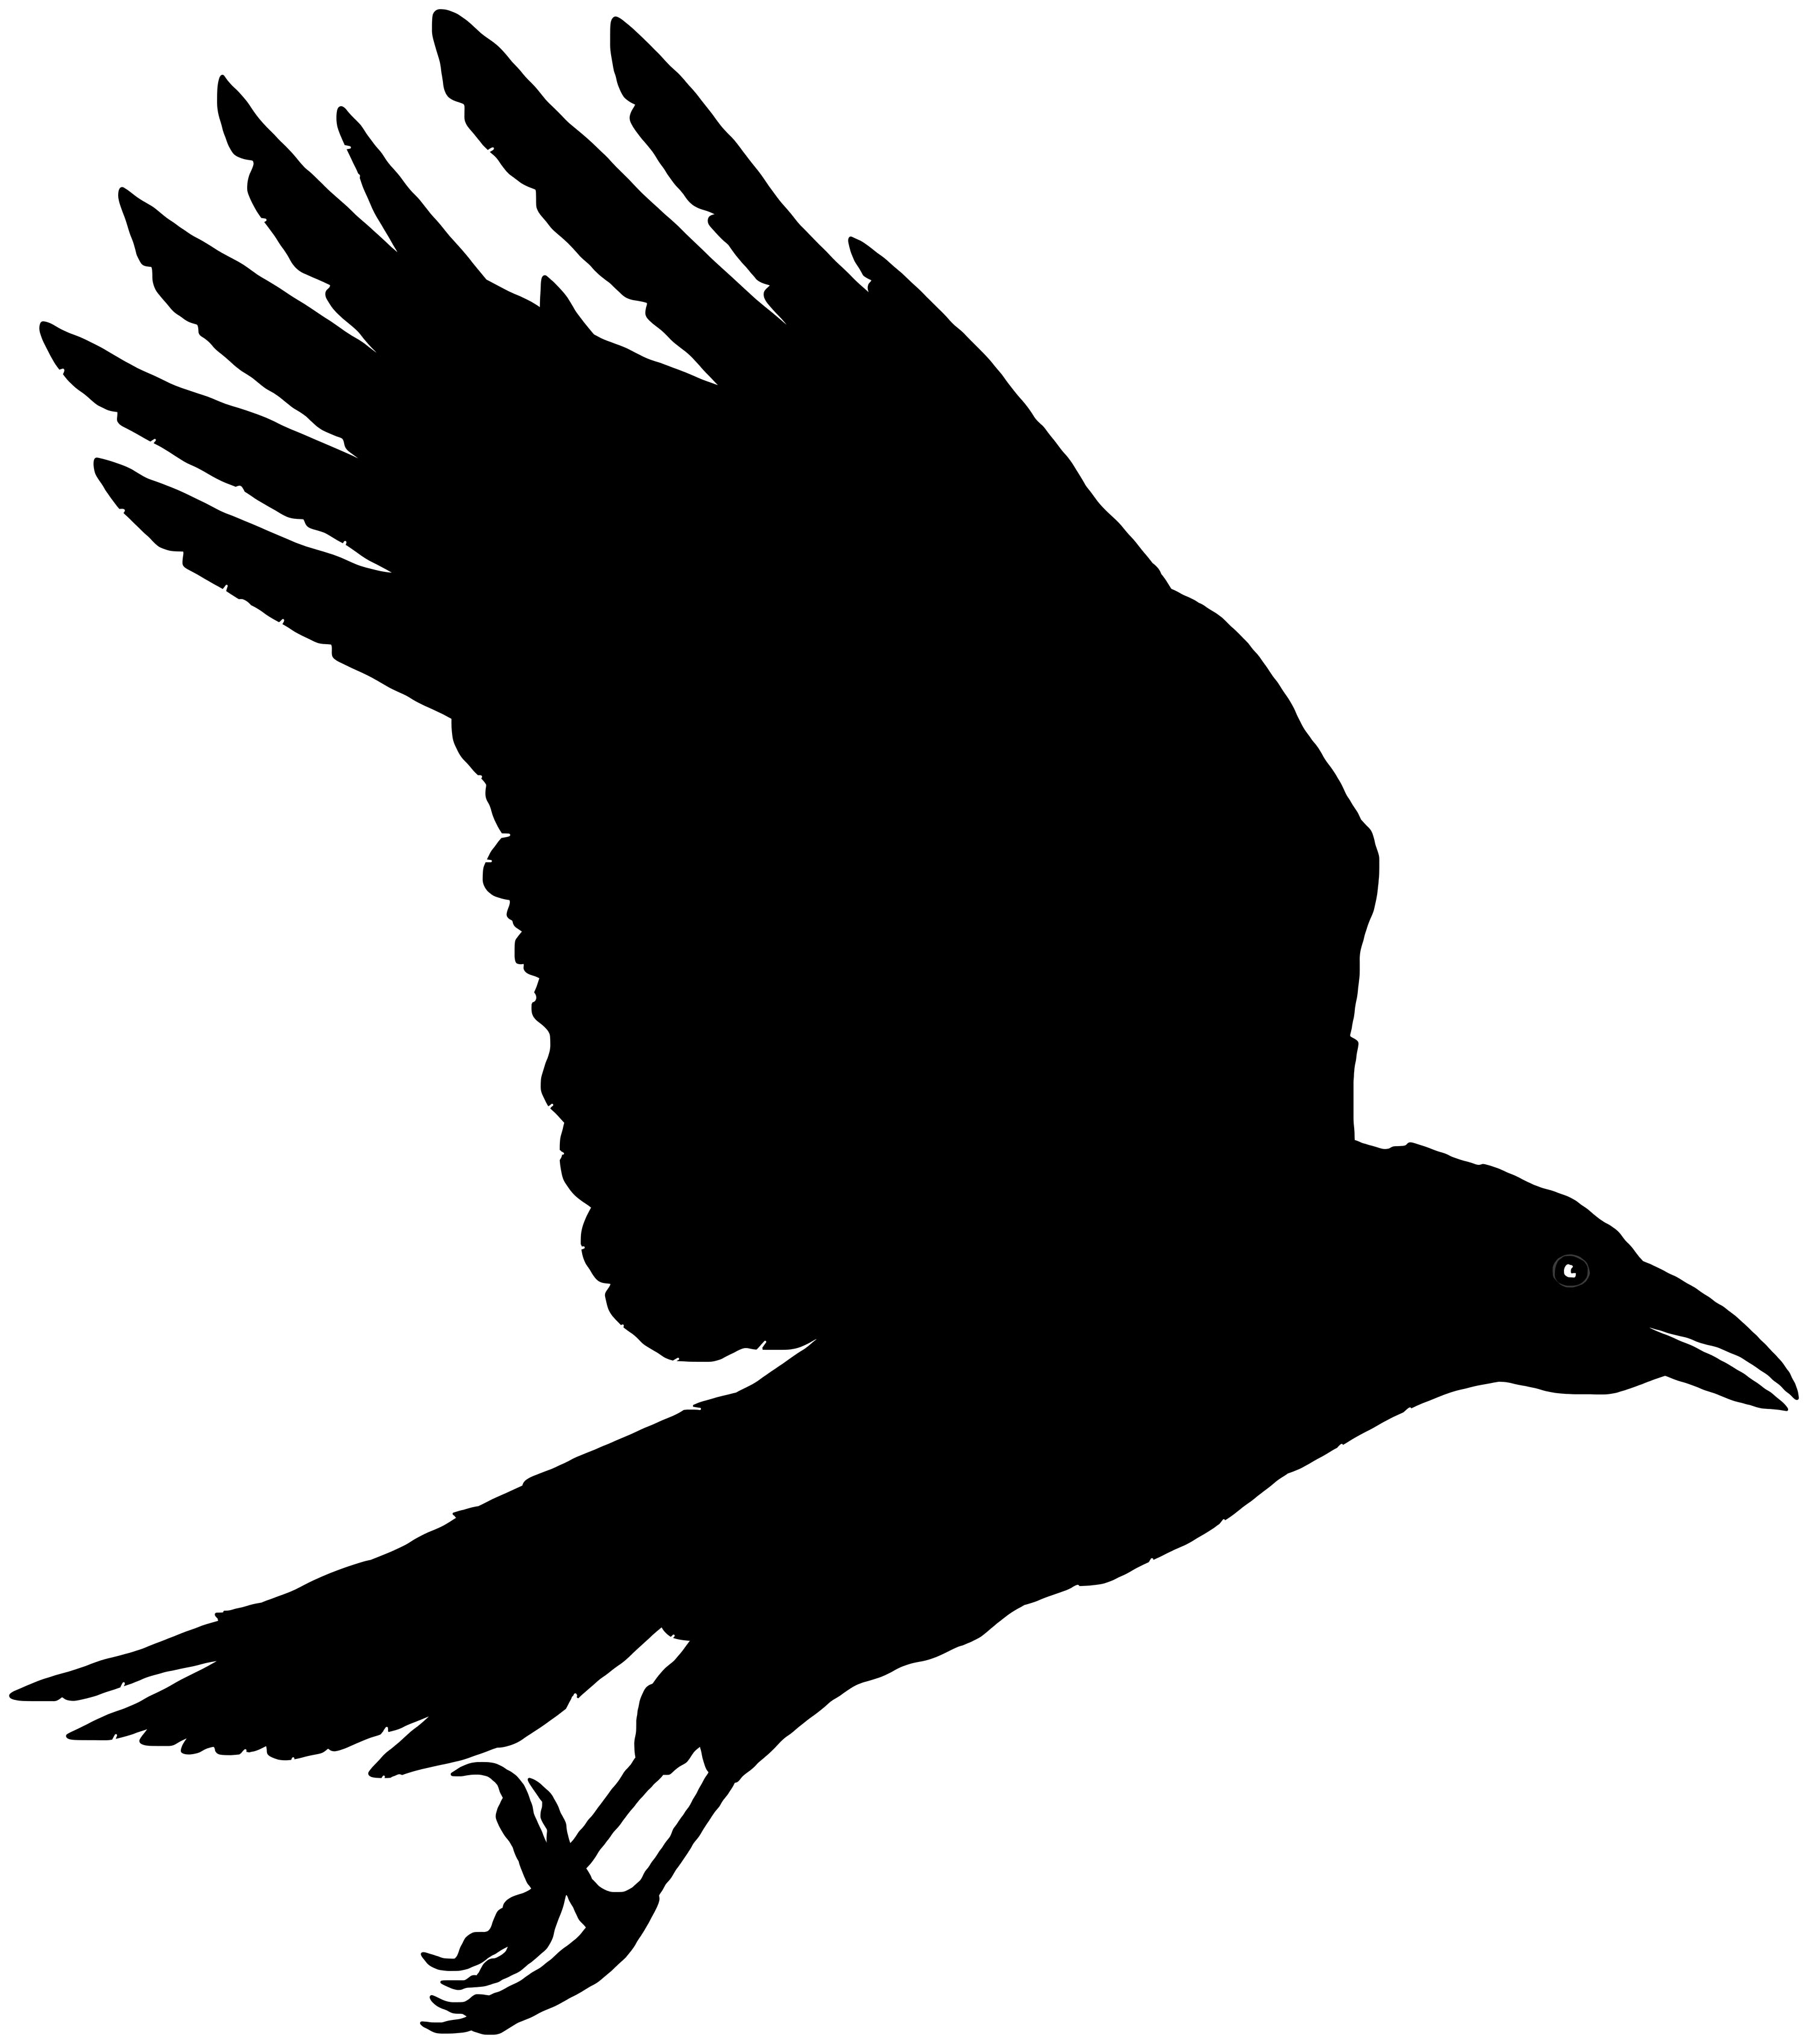 Crow clipart #12, Download drawings